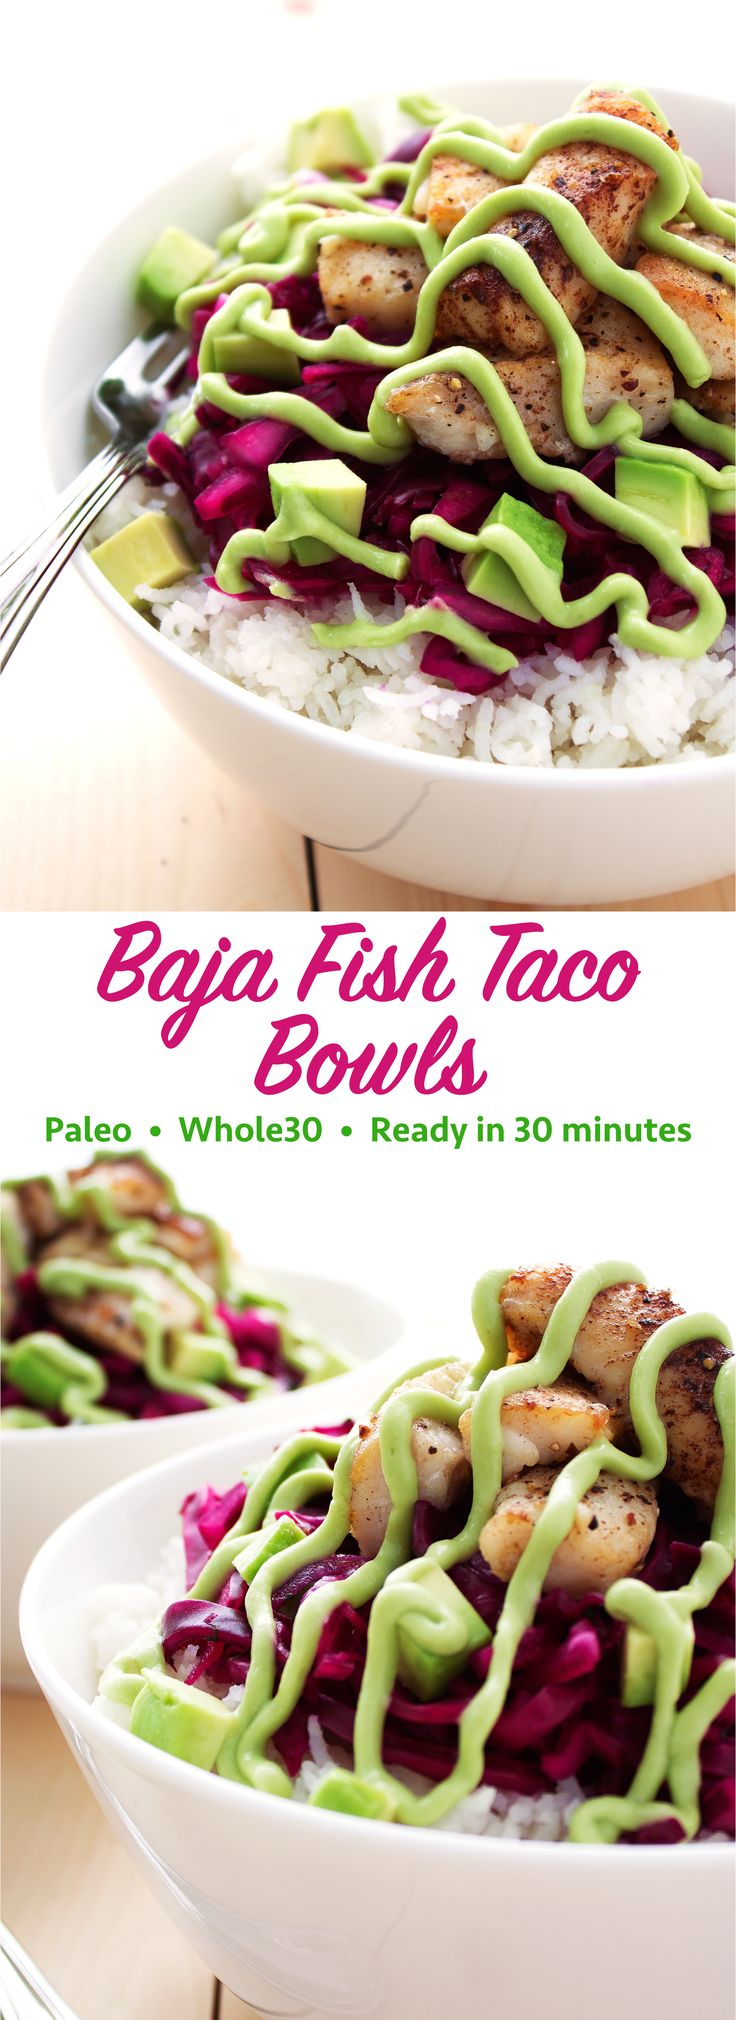 Classic California-style fish tacos put in a bowl and turned paleo! These Baja fish taco bowls are packed with flavor and crunch! They are also gluten free, low carb, keto, Whole30…